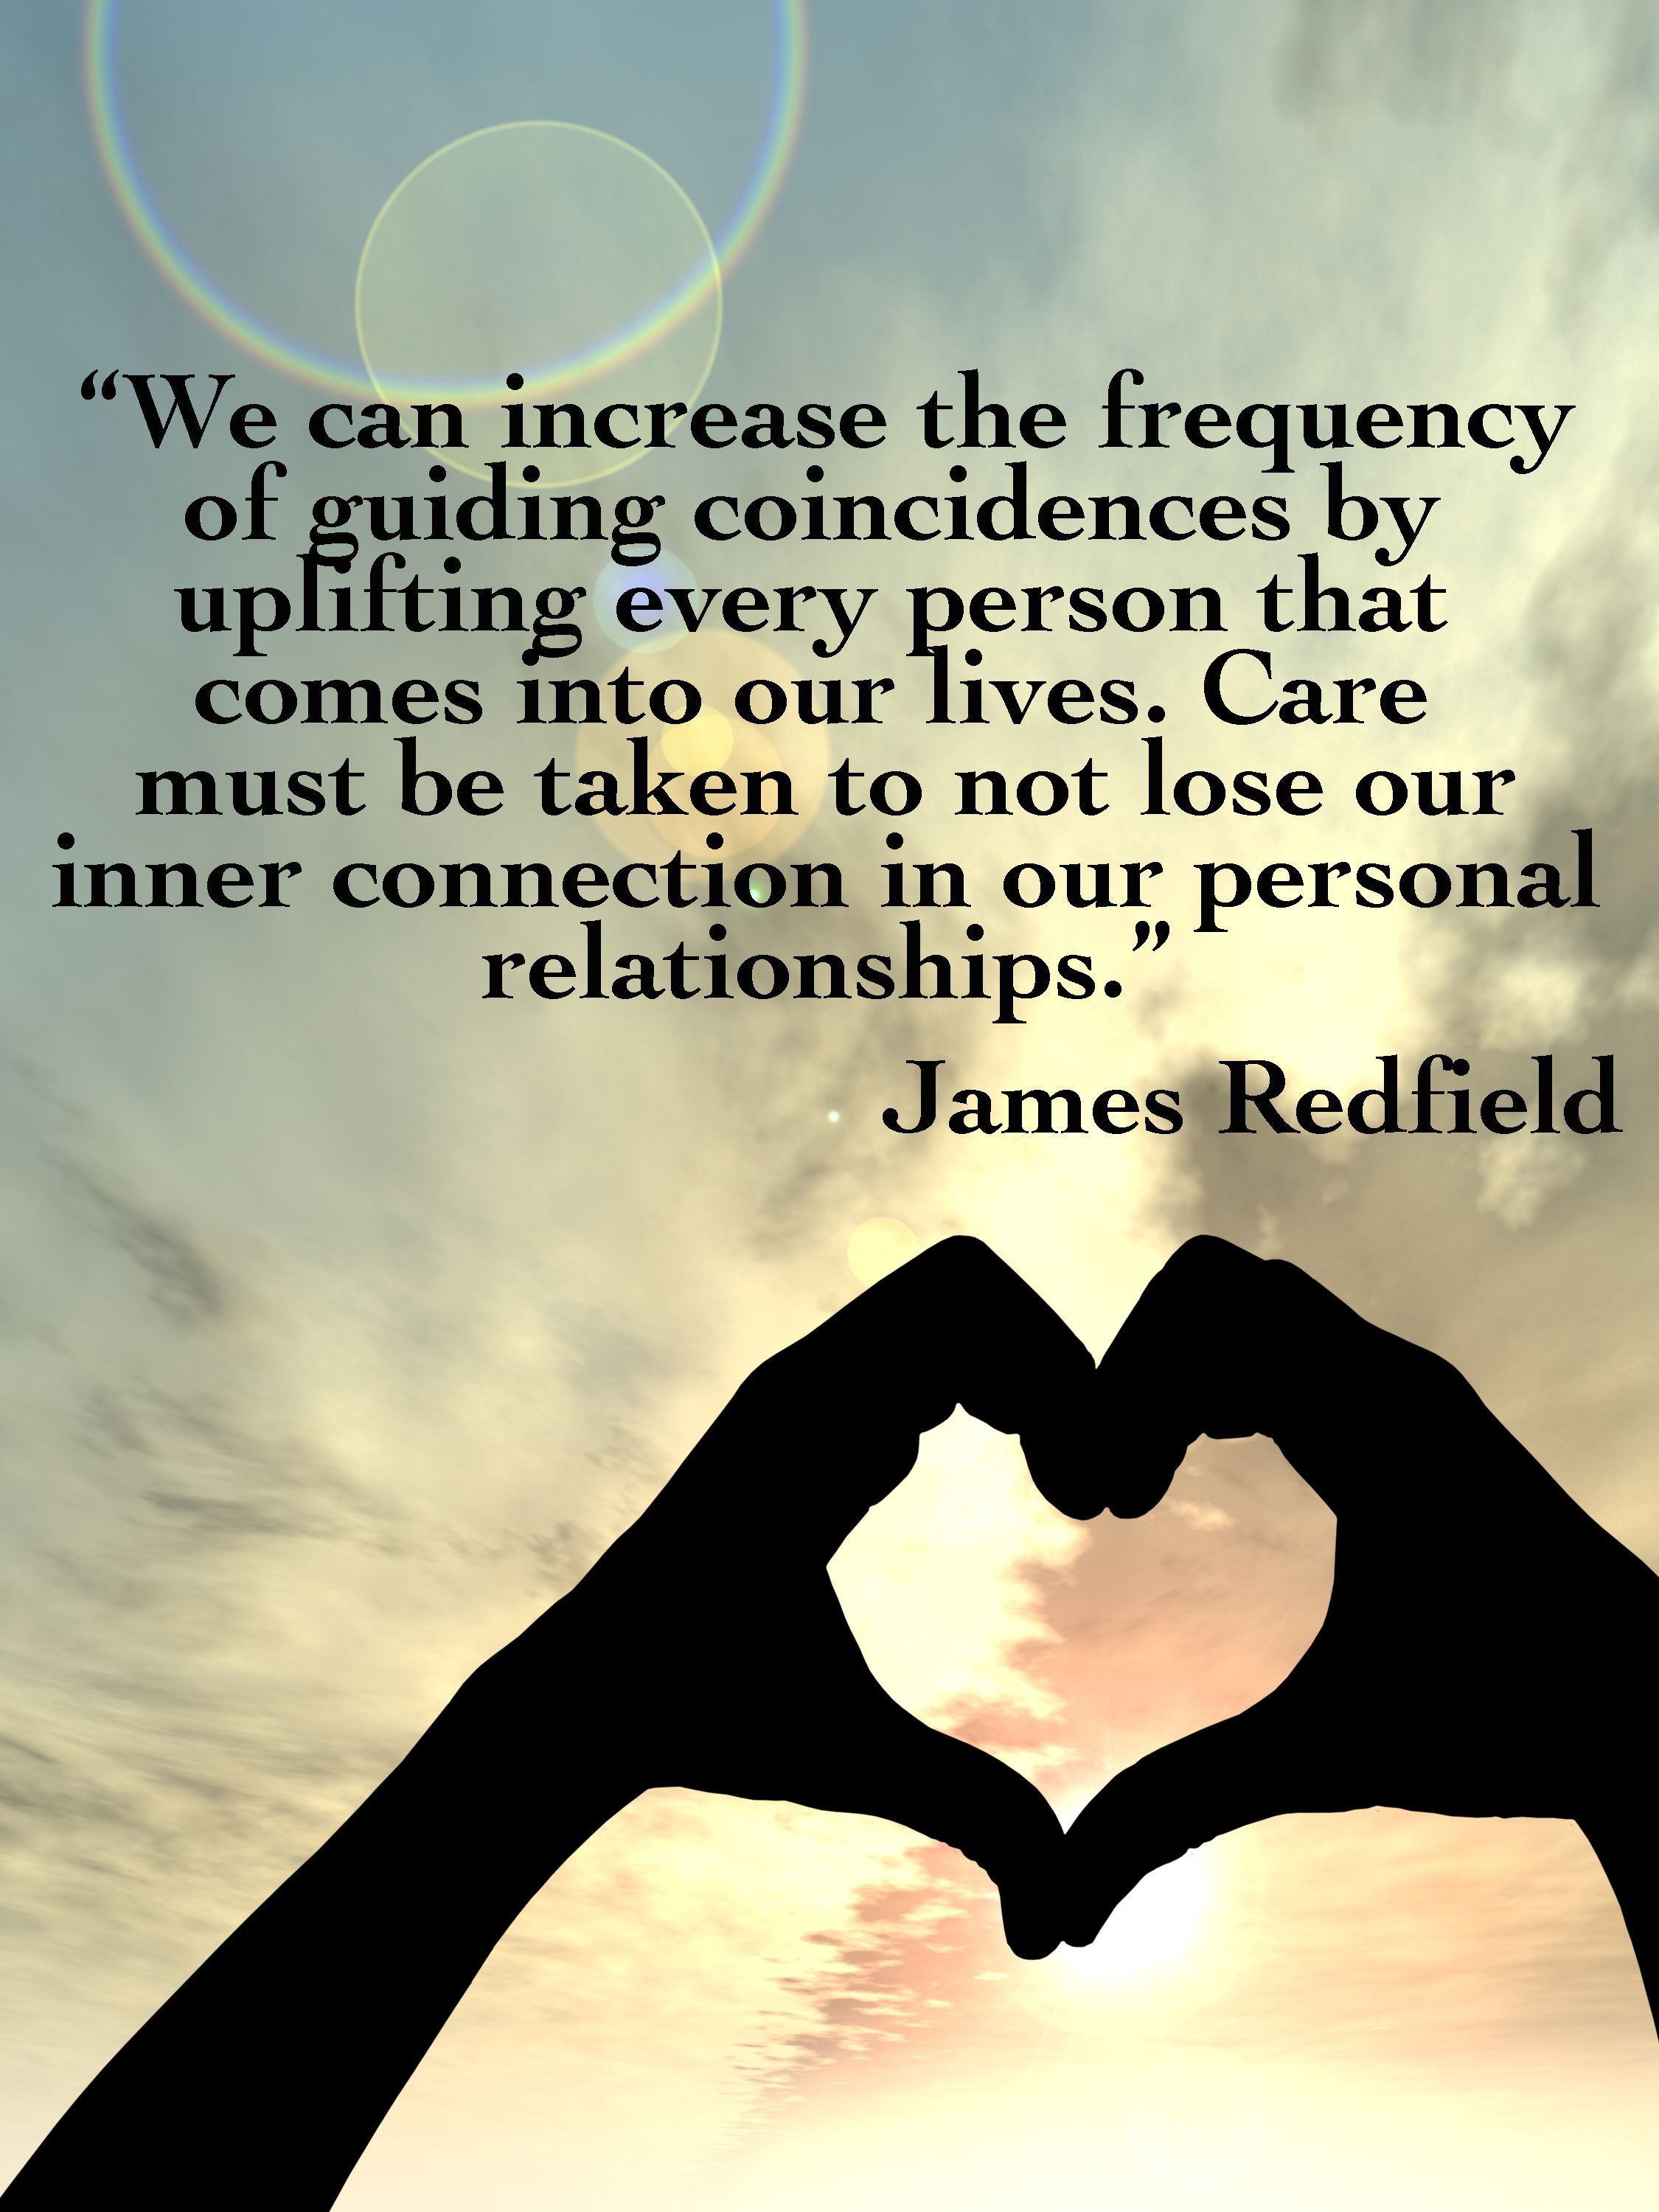 Spiritual Inspirational Quotes Pleasing Inspirational And Spiritual Quotesjames Redfield  Celestine